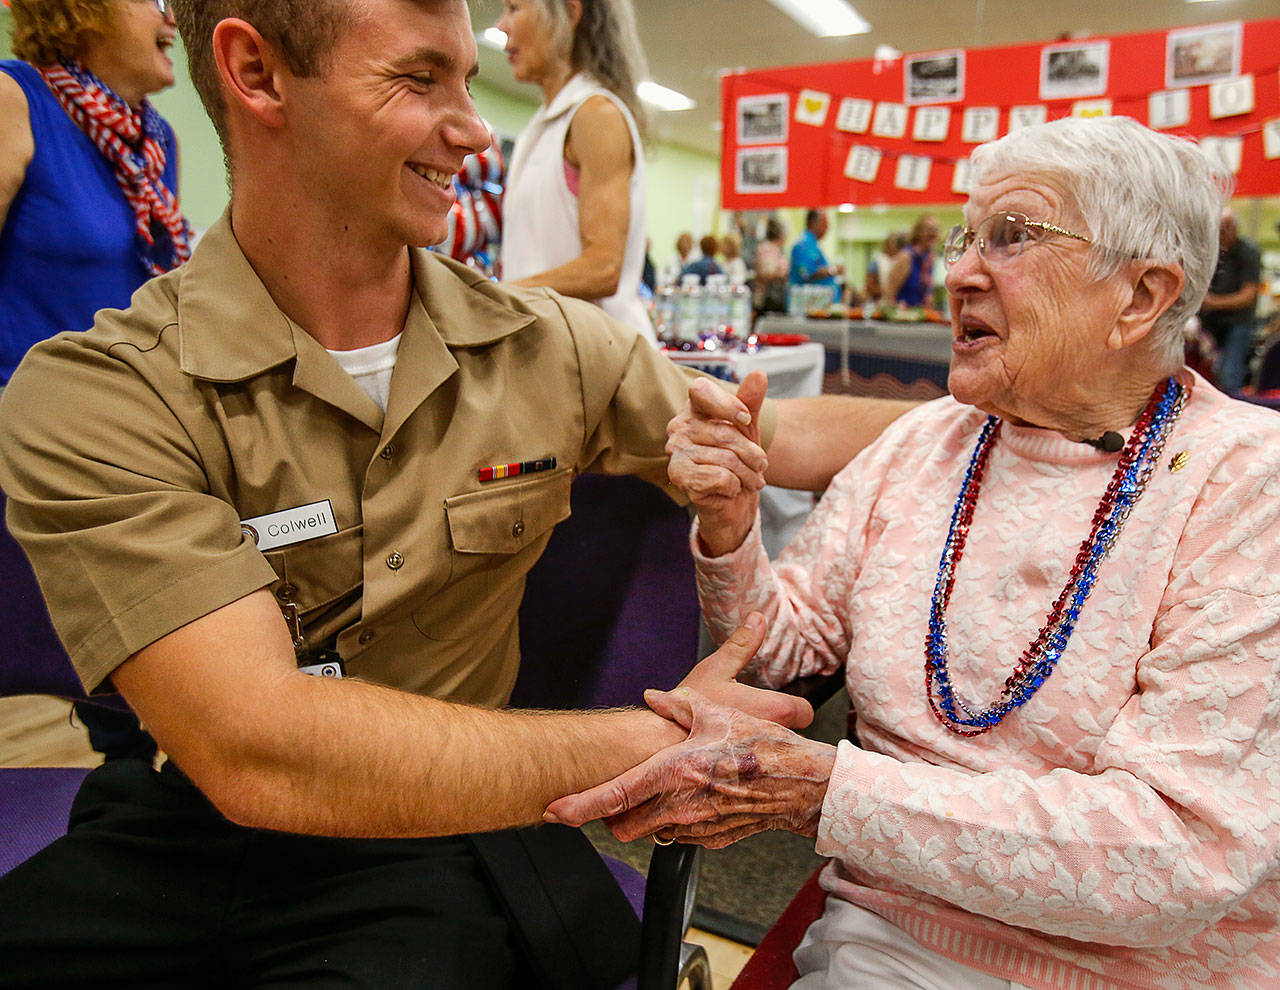 To the delight of her water aerobics pals, the 100-year-old birthday girl really enjoys the young sailors, including Corpsman Recruit Kristian Colwell from Naval Station Everett, attending the party. (Dan Bates / The Herald)